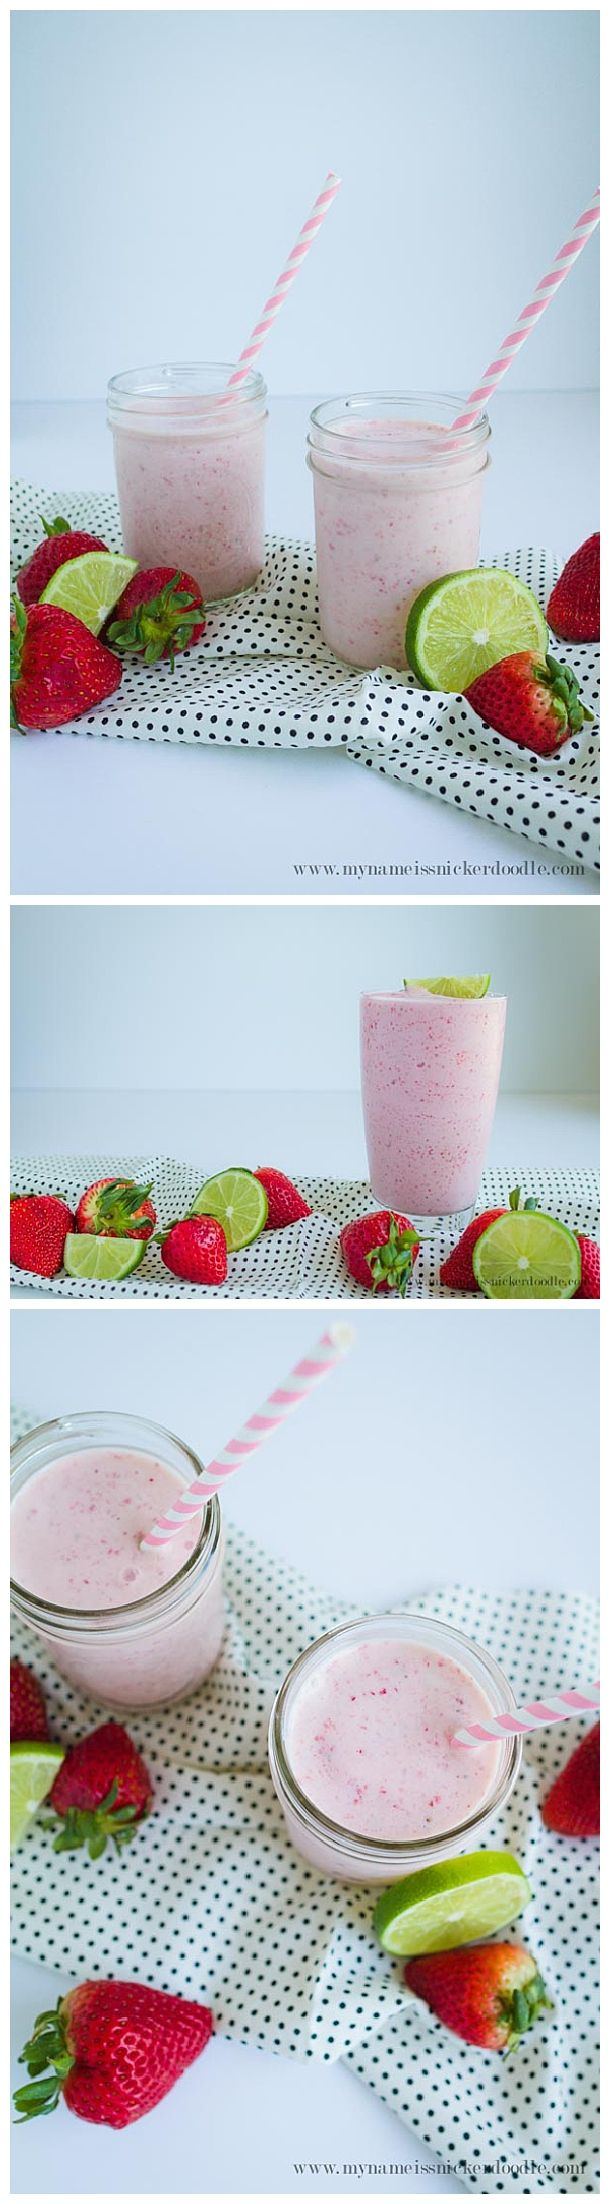 Frosted Freckled Limeade Recipe - Skip the Chick fil A drive thru and try this yummy homemade frozen treat instead!